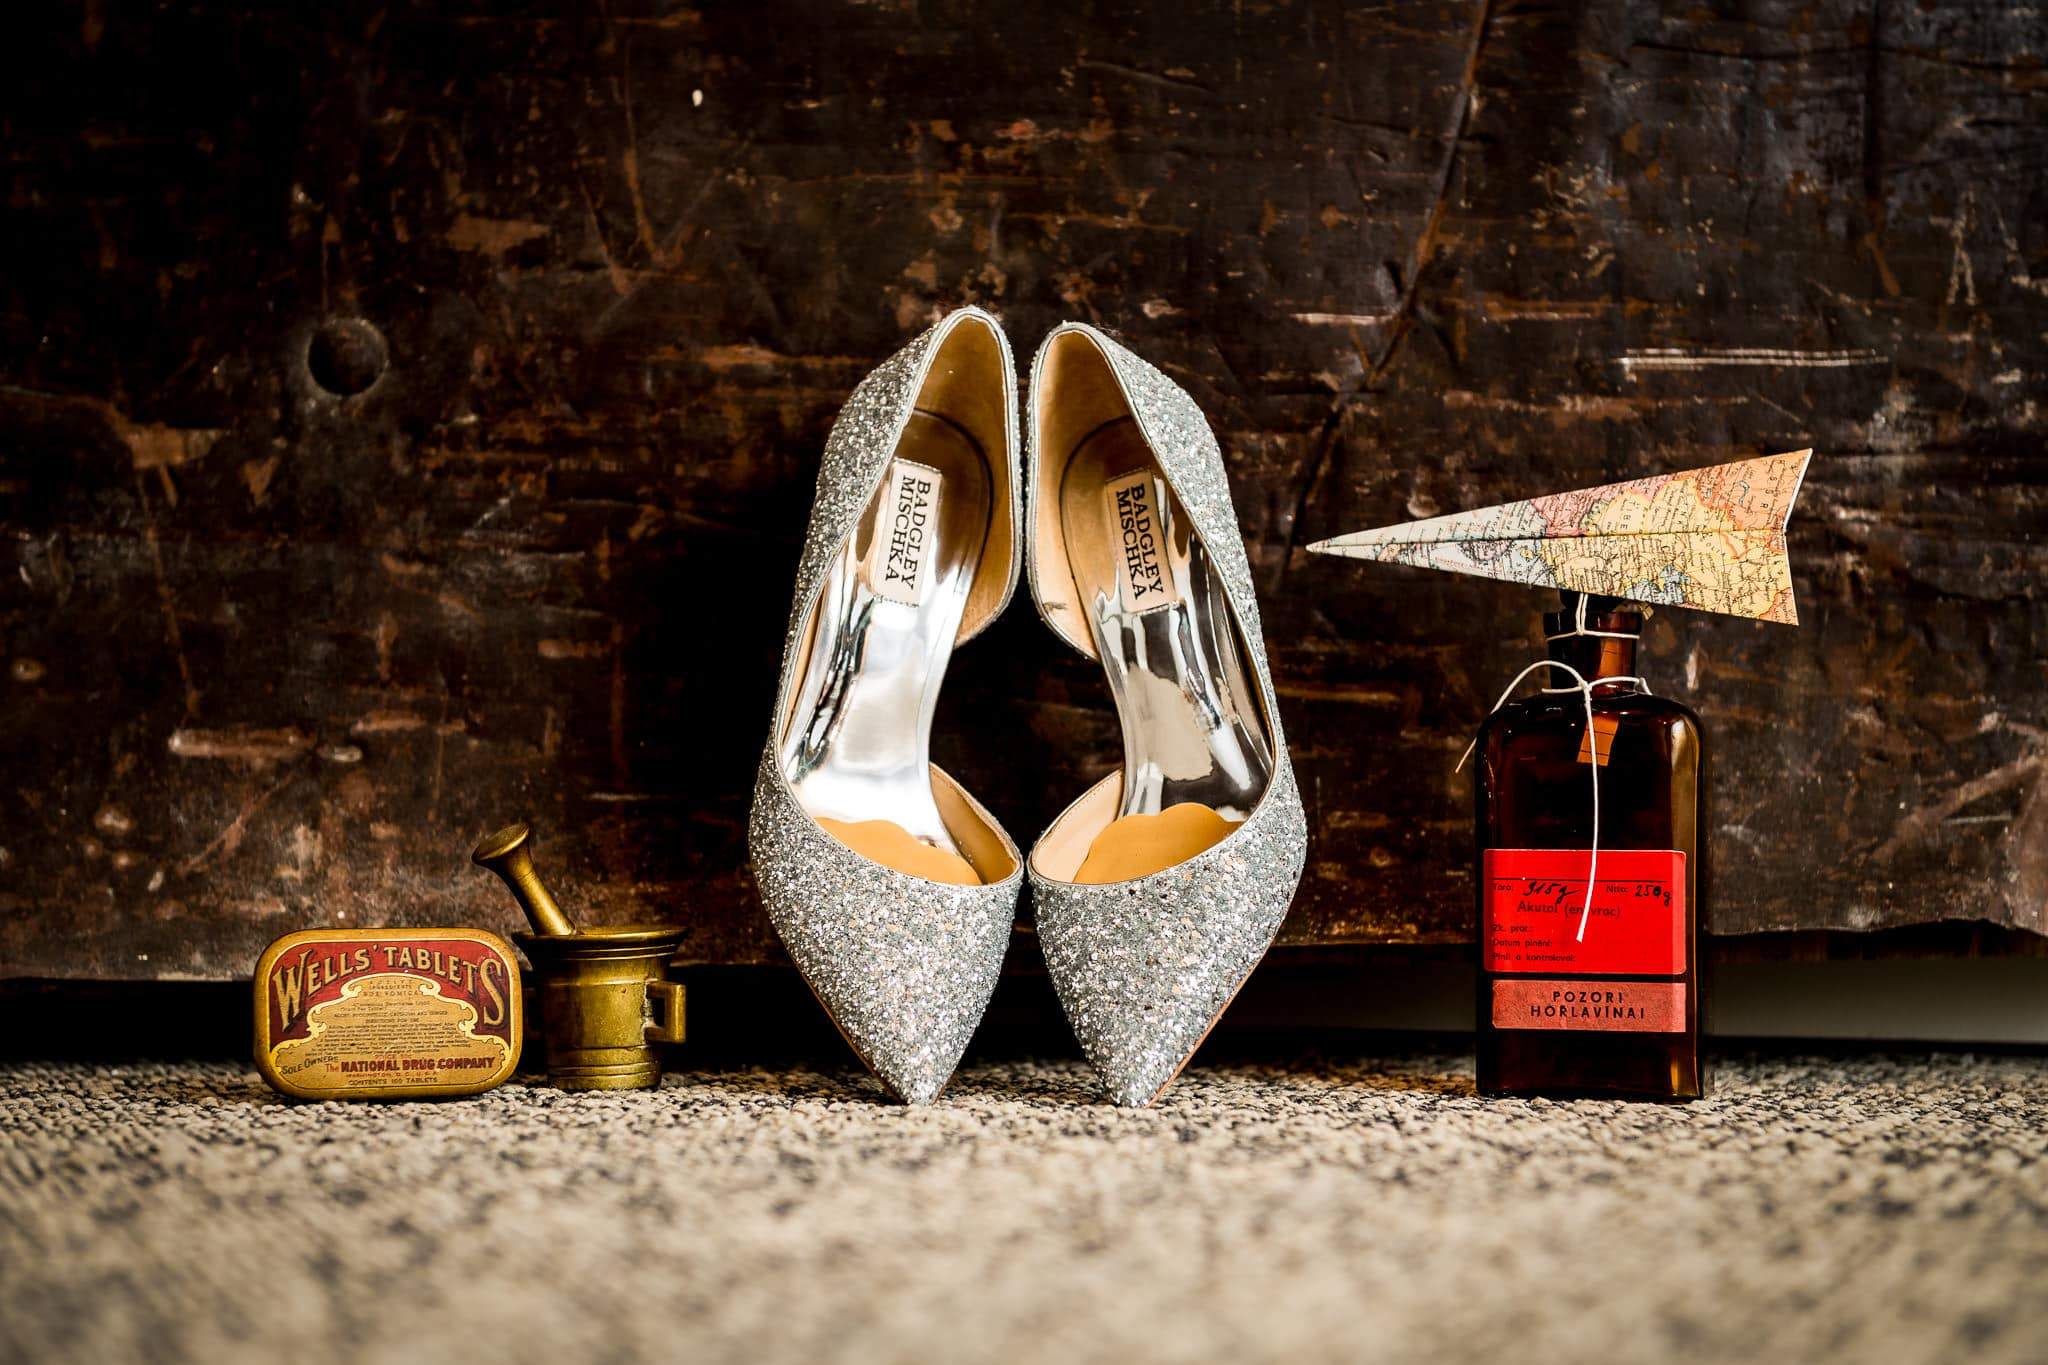 Wedding Shoes and details at the Hewing Hotel